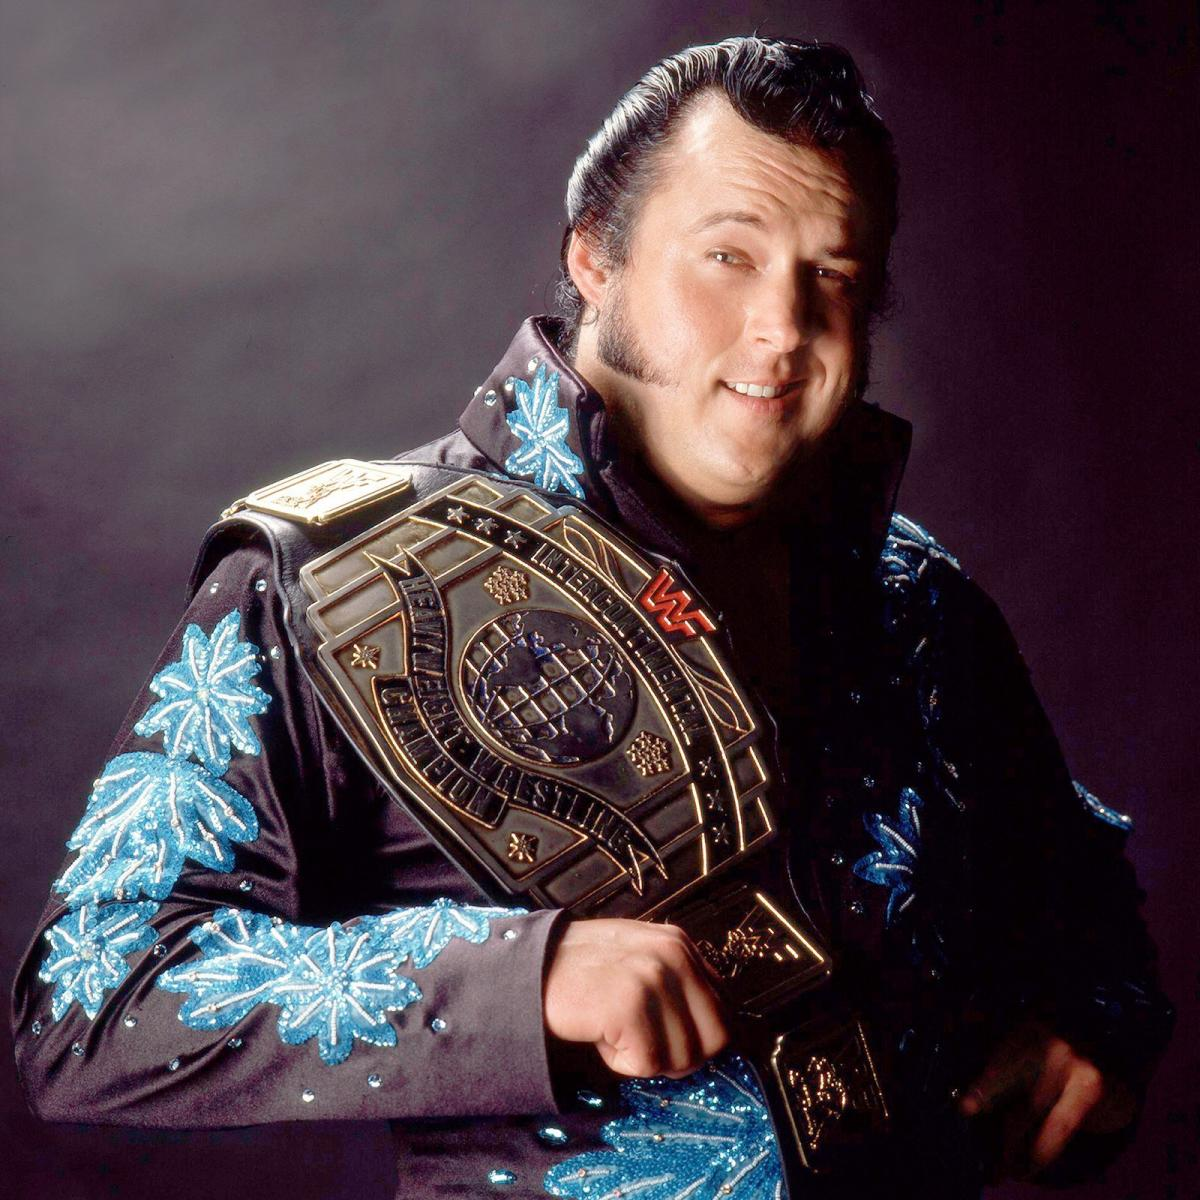 The Honky Tonk Man To Be Inducted Into The 2019 WWE Hall Of Fame